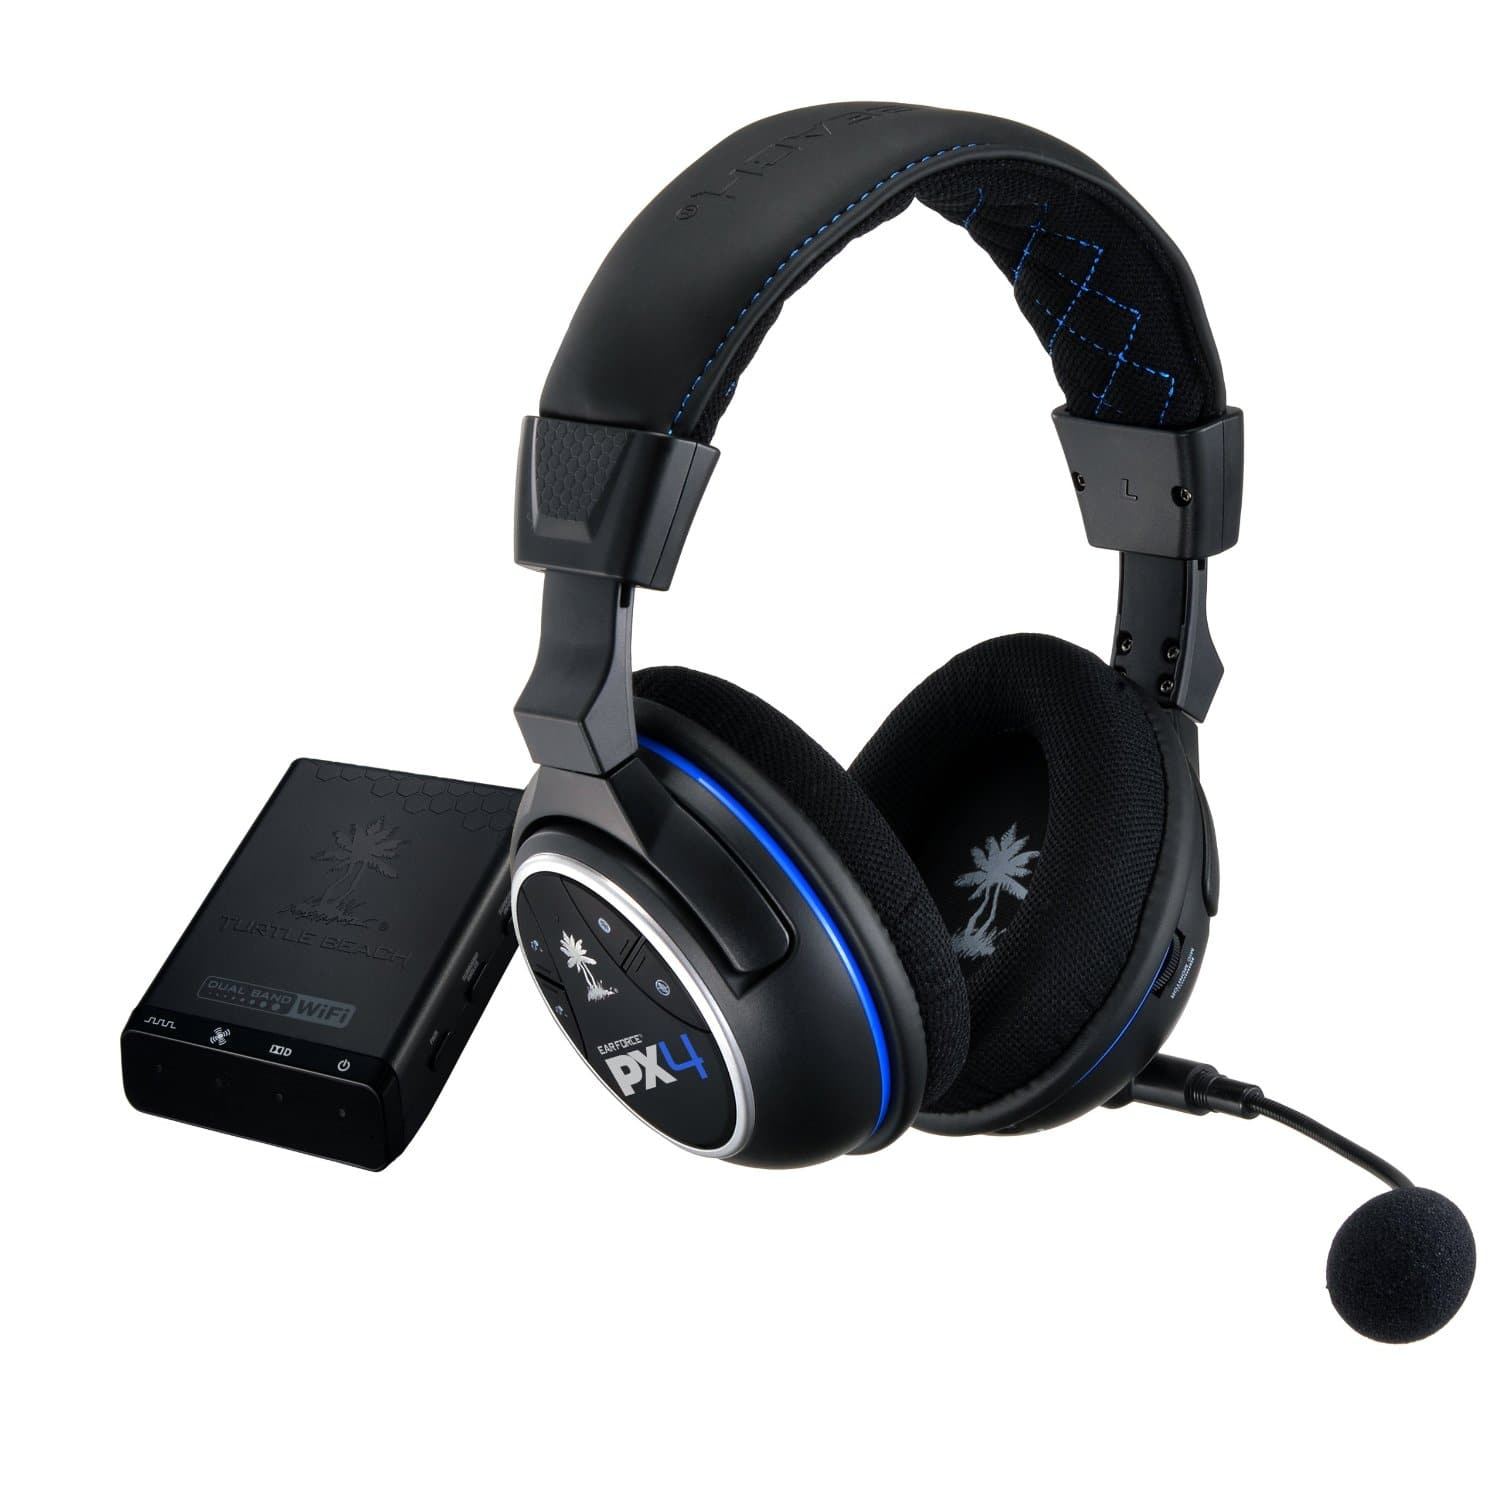 Turtle Beach Ear Force PX4 Wireless Gaming Headset for PS4, PS3 & Xbox 360  $50 + Free Store Pick-Up